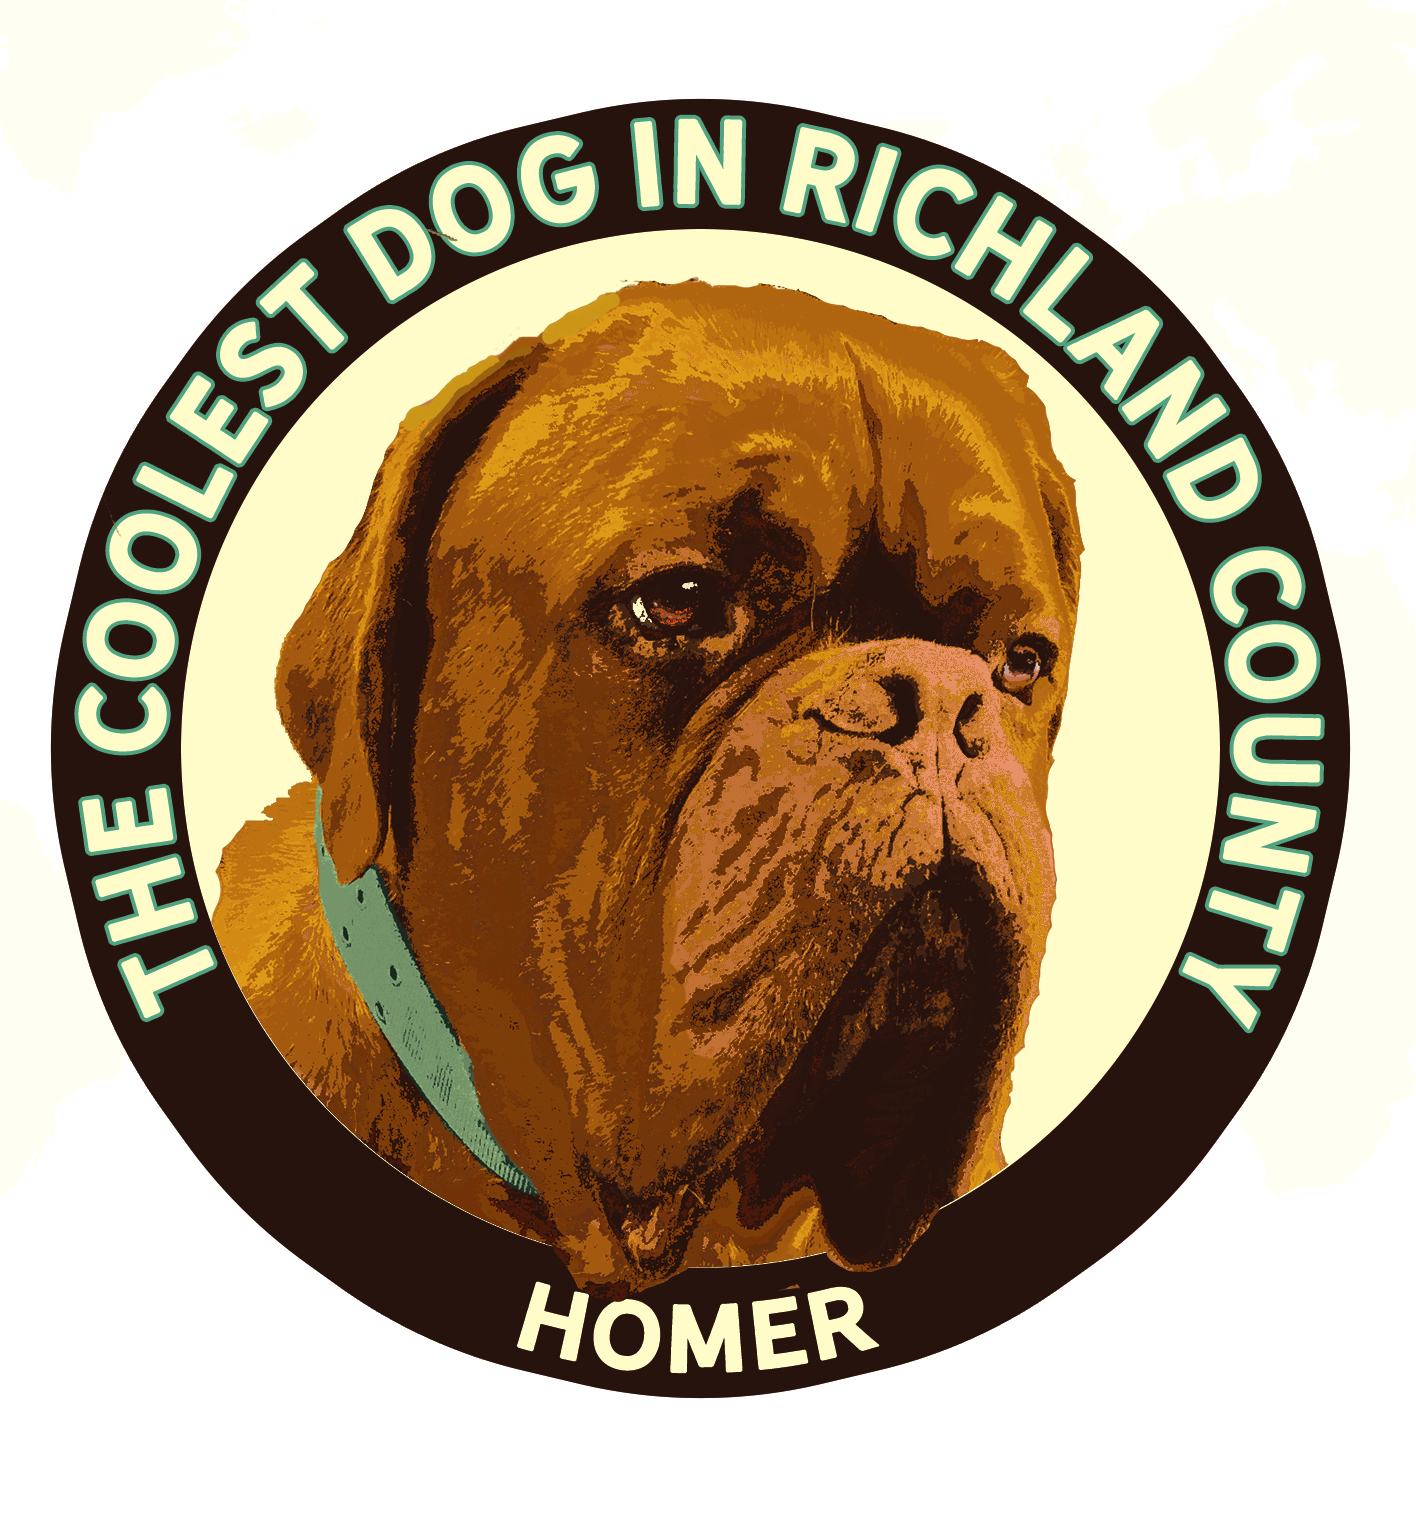 HOMER a French Mastiff, the same breed as Hooch, from Turner and Hooch, was voted the Coolest Dog in Richland County.